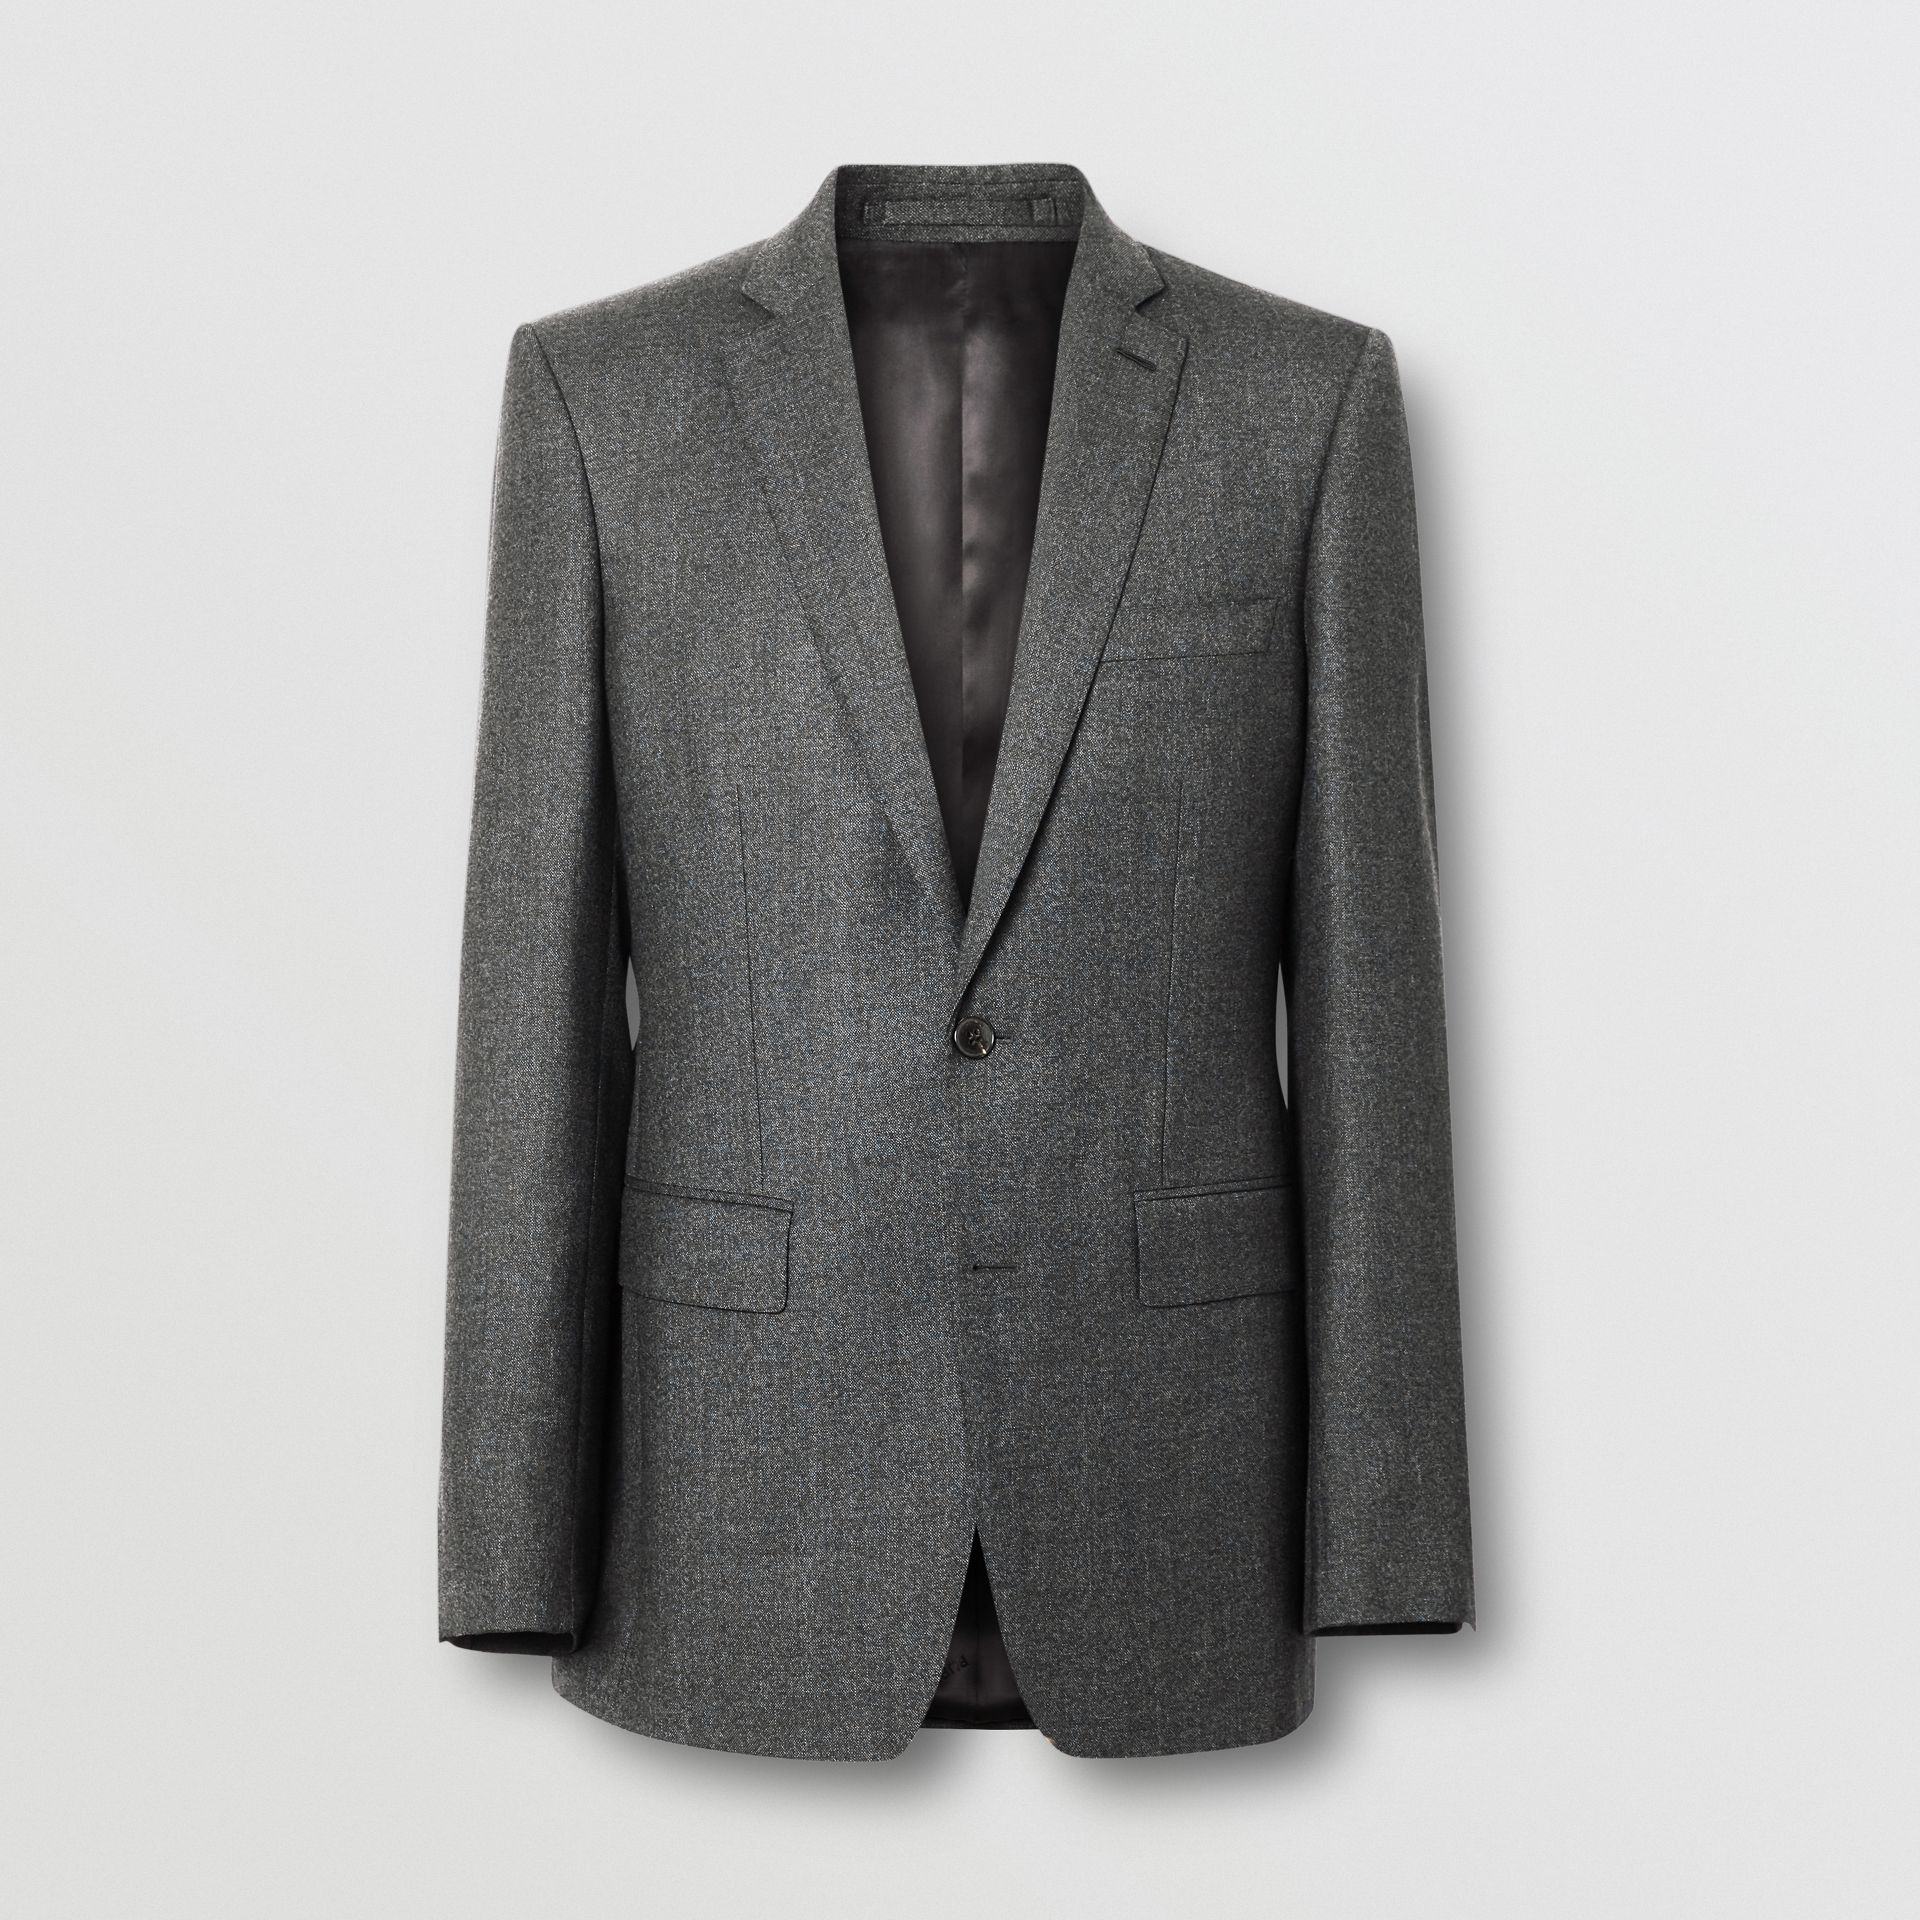 English Fit Sharkskin Wool Suit in Black Melange - Men | Burberry Hong Kong S.A.R - gallery image 3